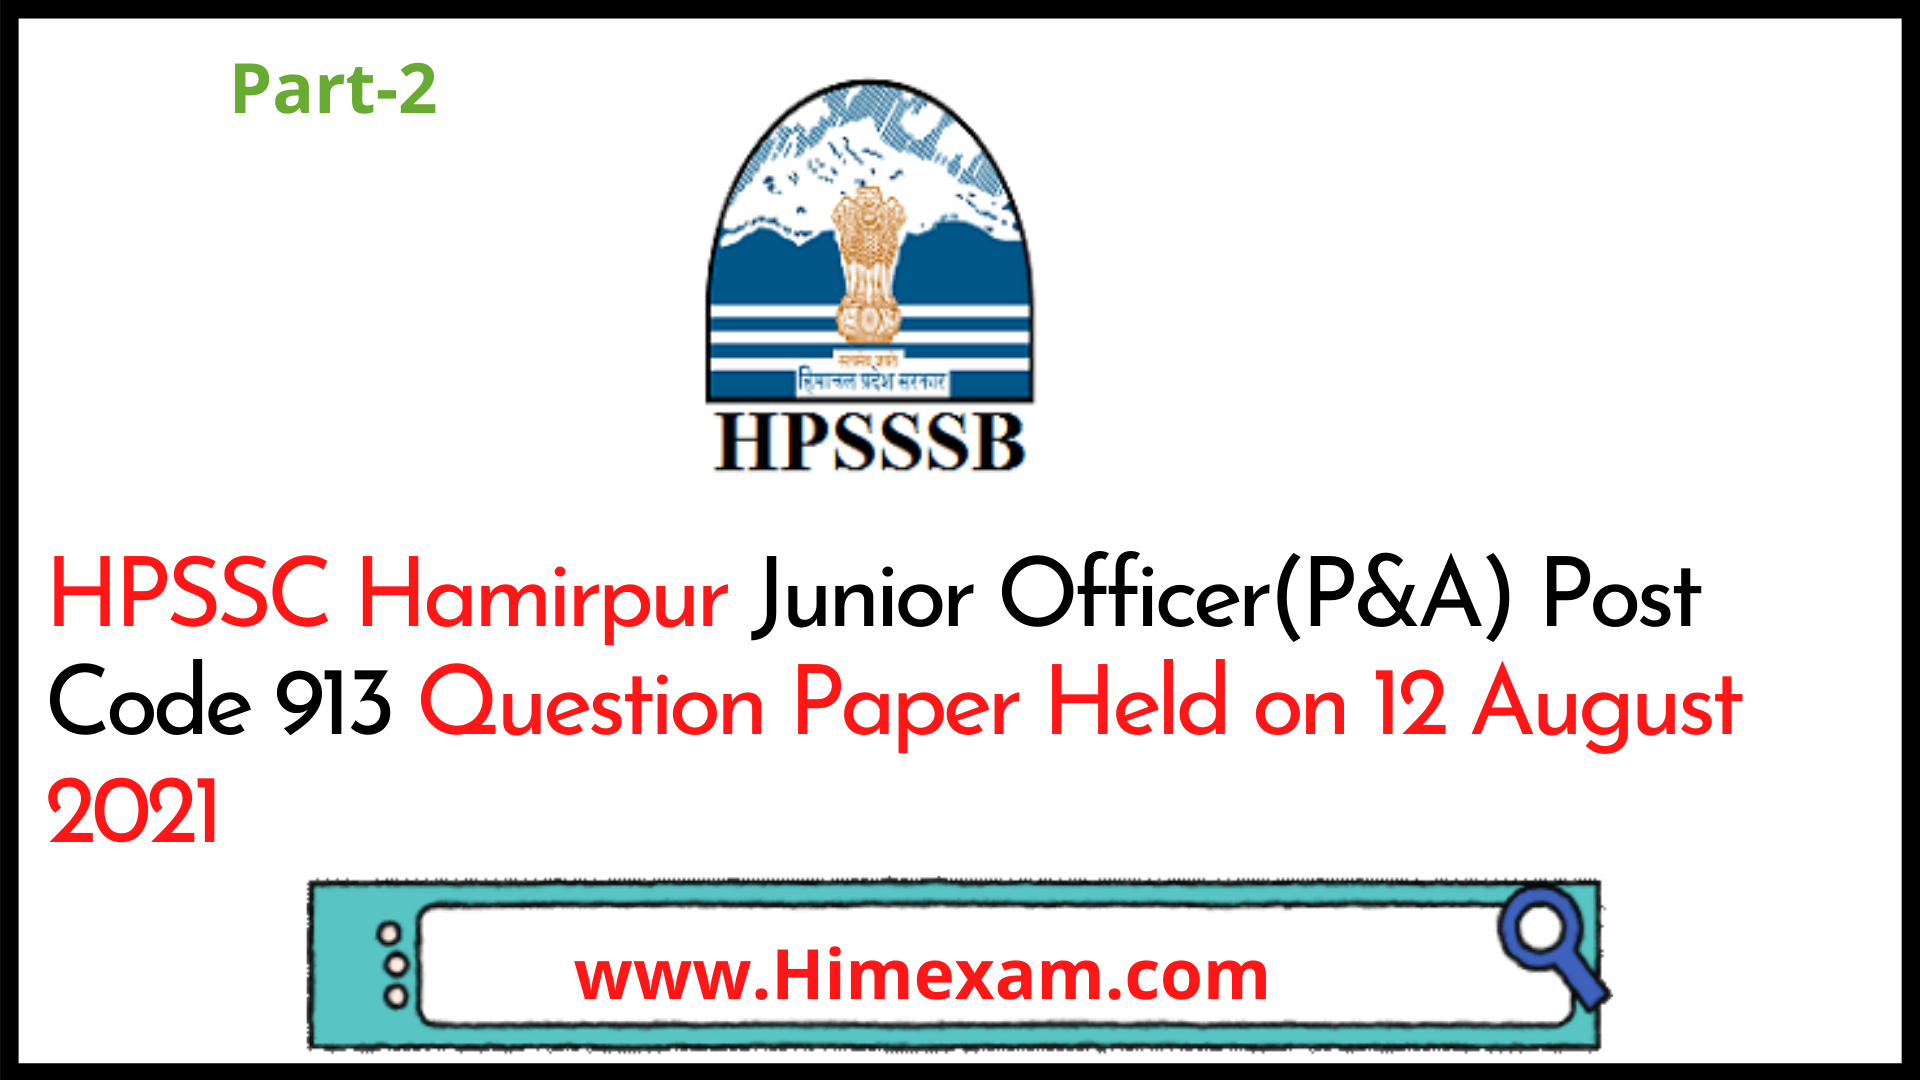 HPSSC Hamirpur Junior Officer(P&A) Post Code 913 Question Paper Held on 12 August 2021